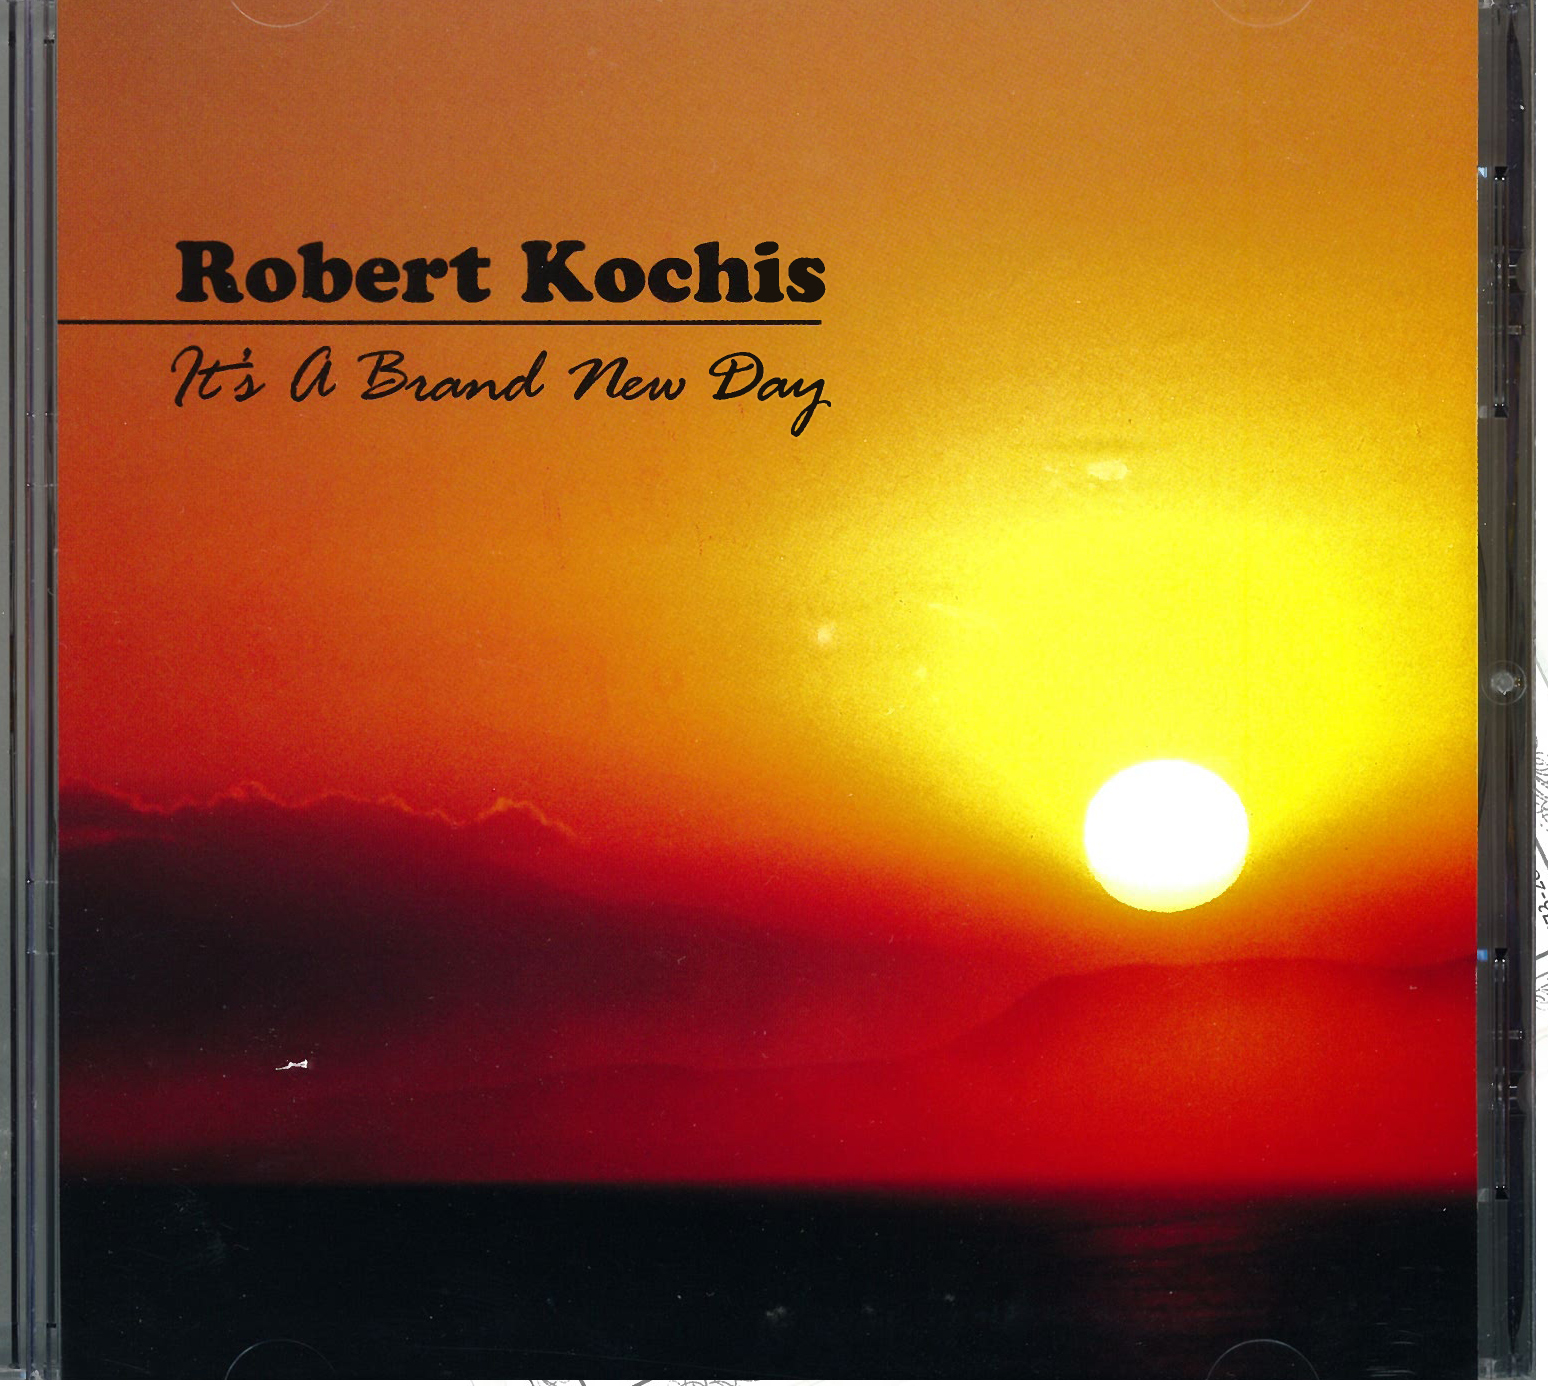 It's A Brand New Day by Robert Kochis 88-5911011102